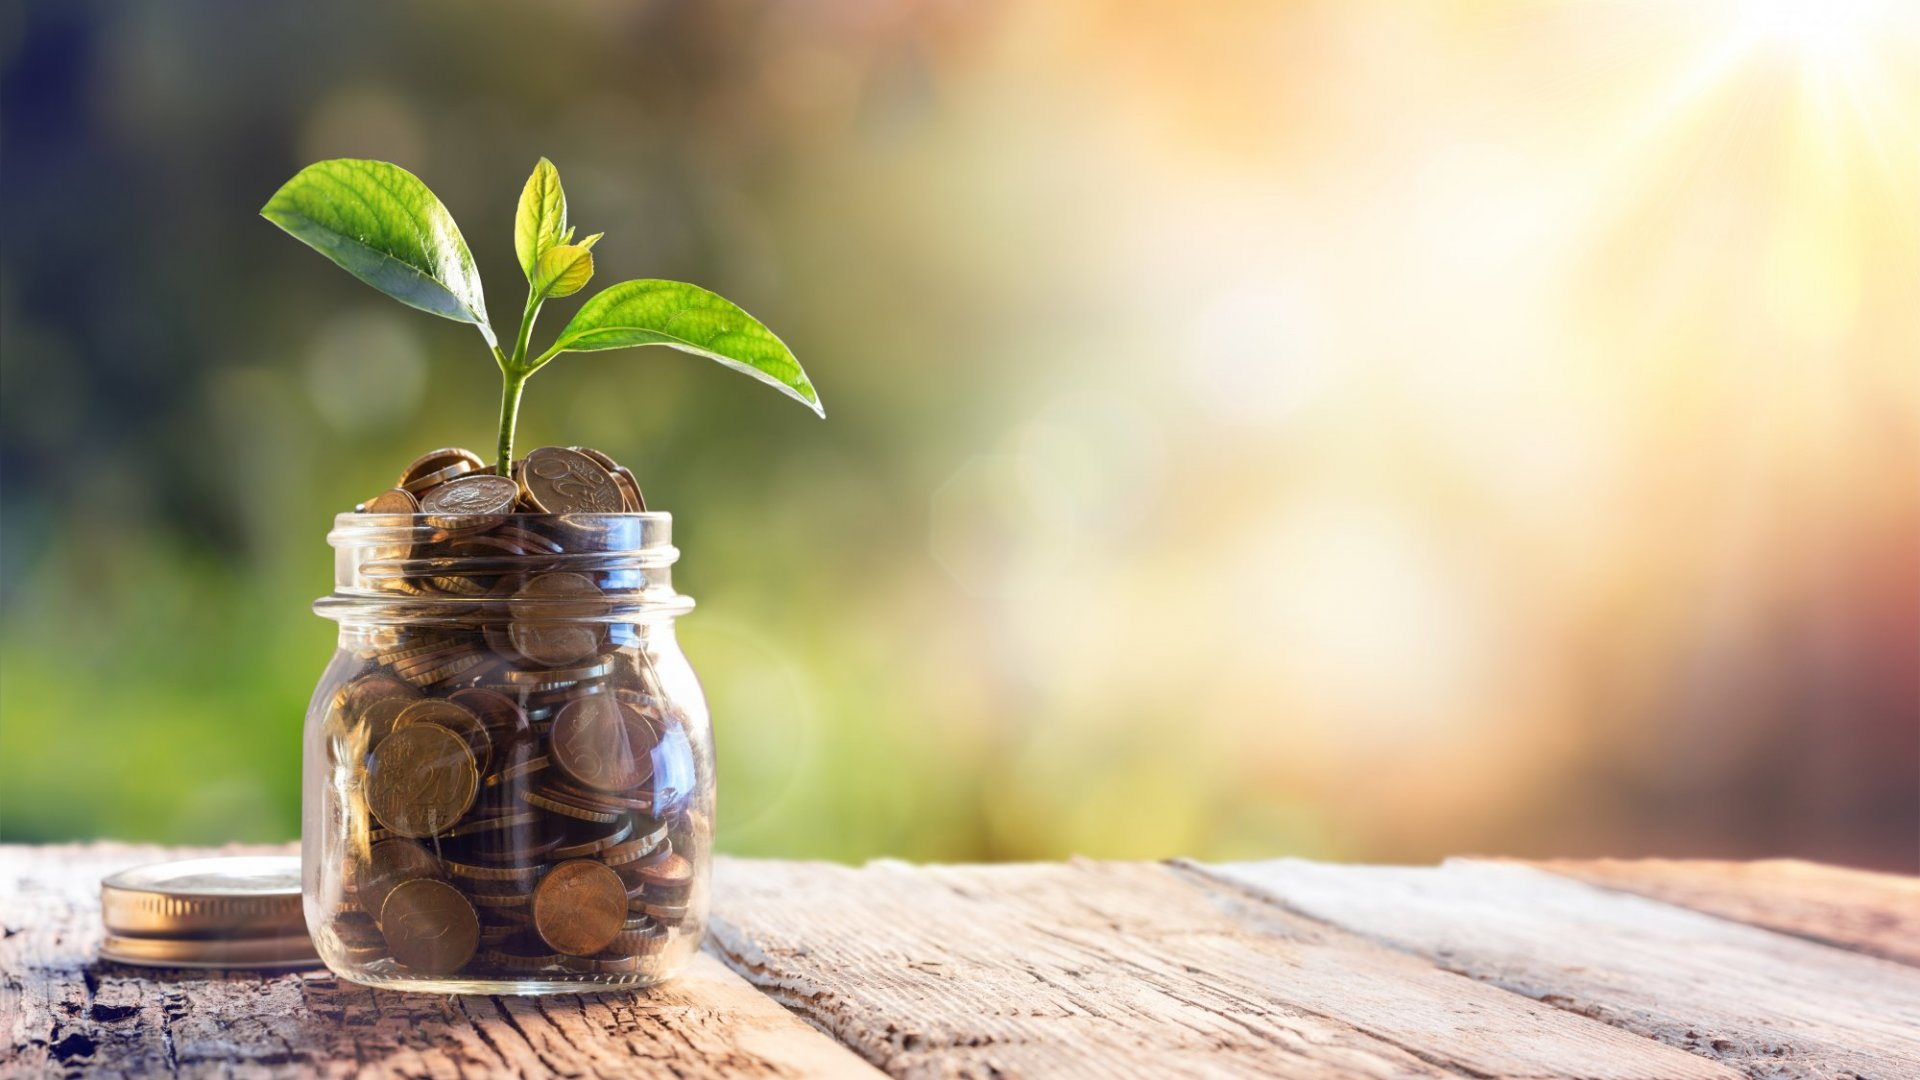 5 Things You Need to Know About Raising Startup Funds